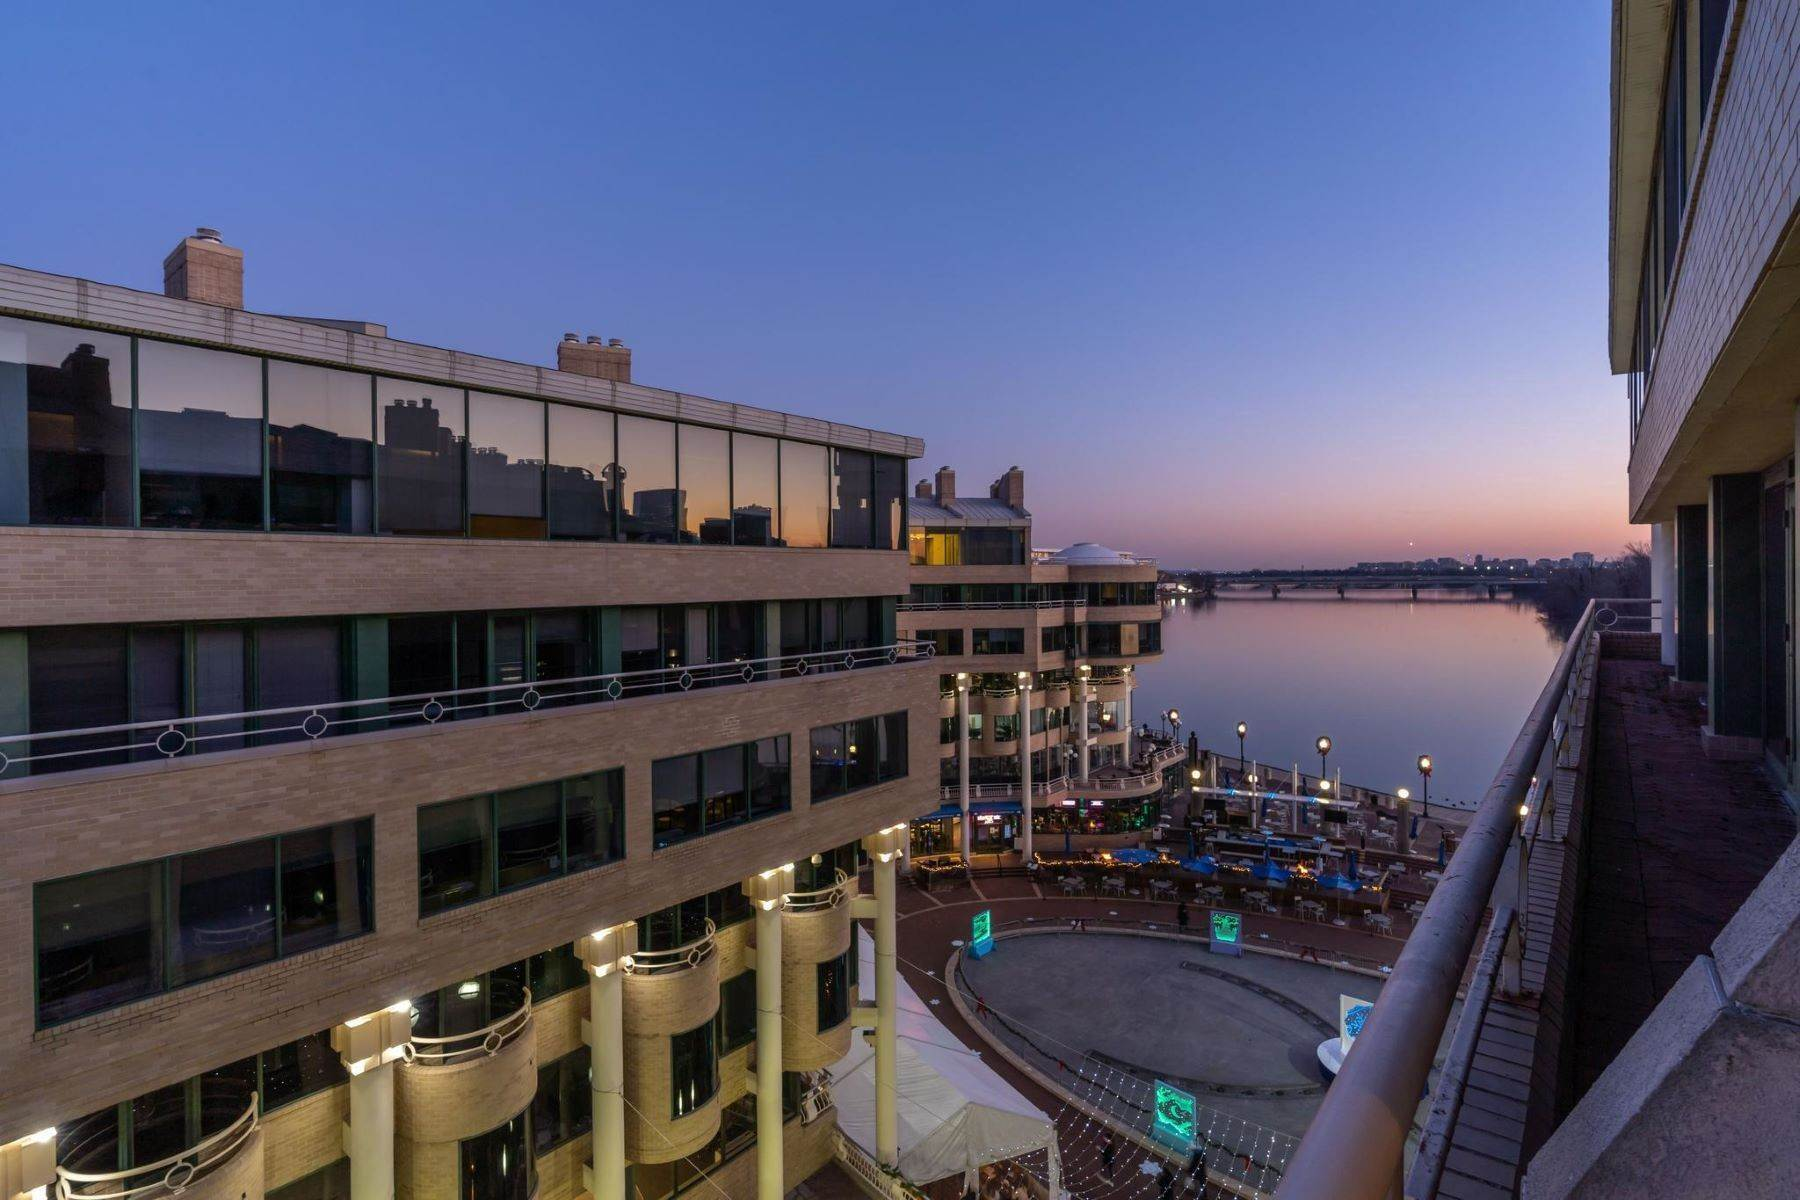 Property alle Georgetown Waterfront 3030 K St NW #210, Georgetown, Washington, Distretto Di Columbia, 20007 Stati Uniti